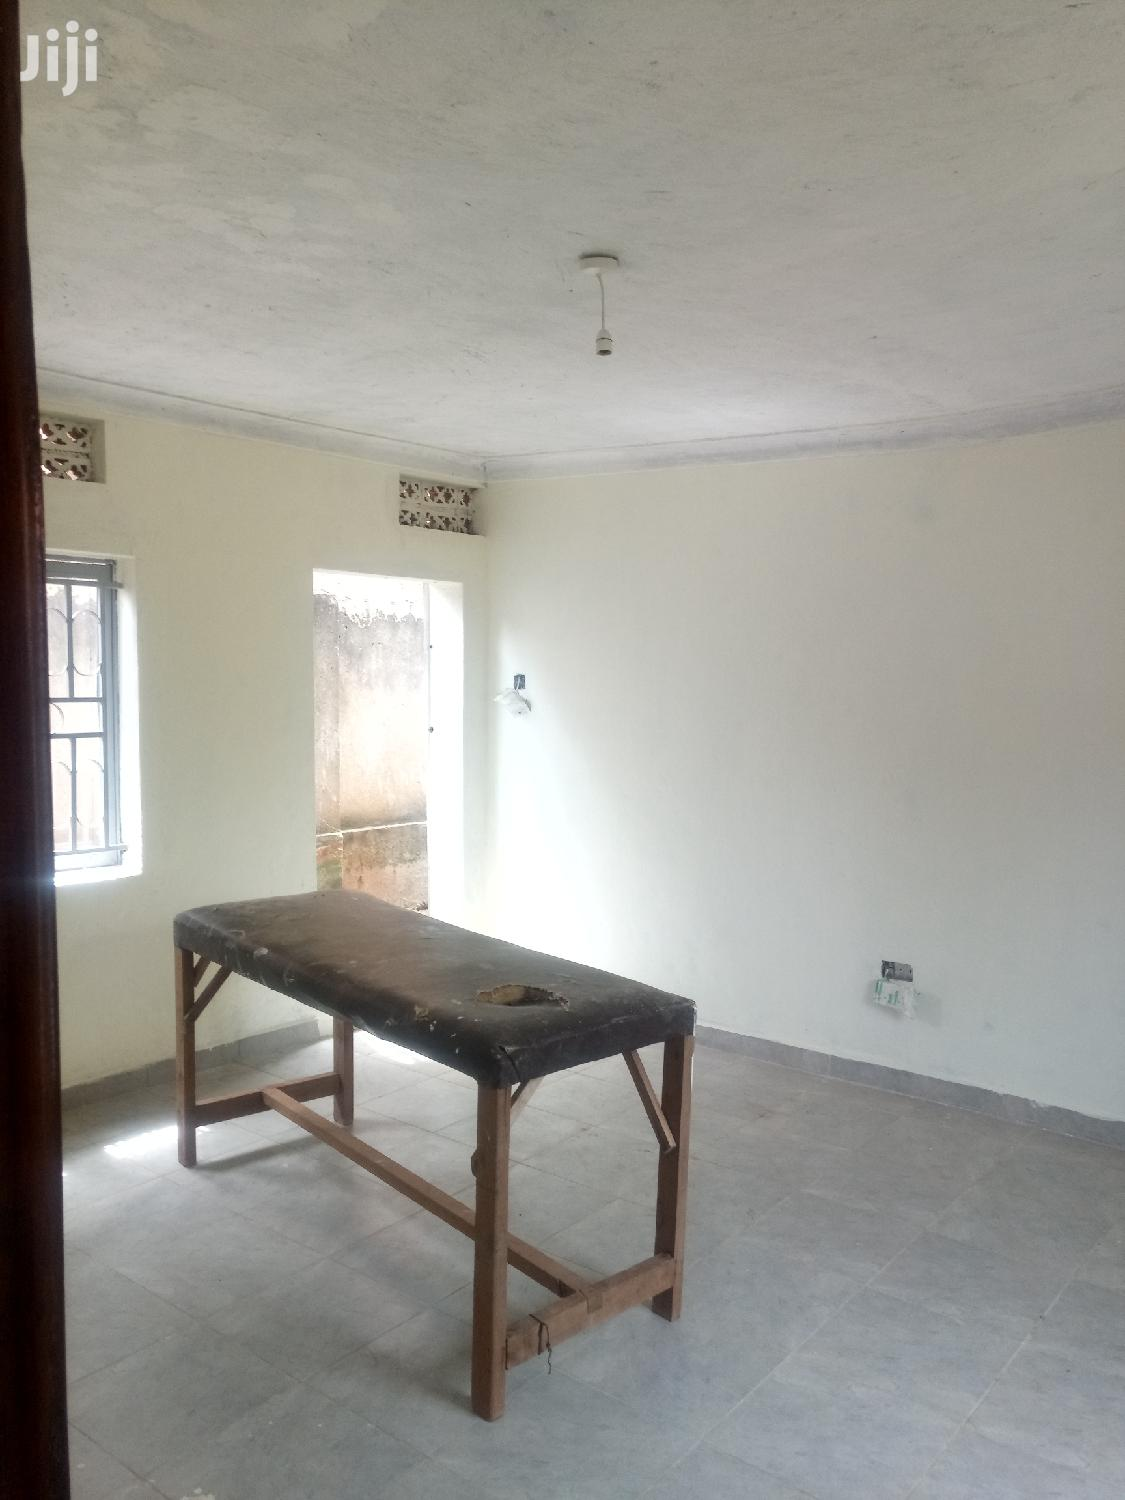 Mutungo Big Single Room House for Rent